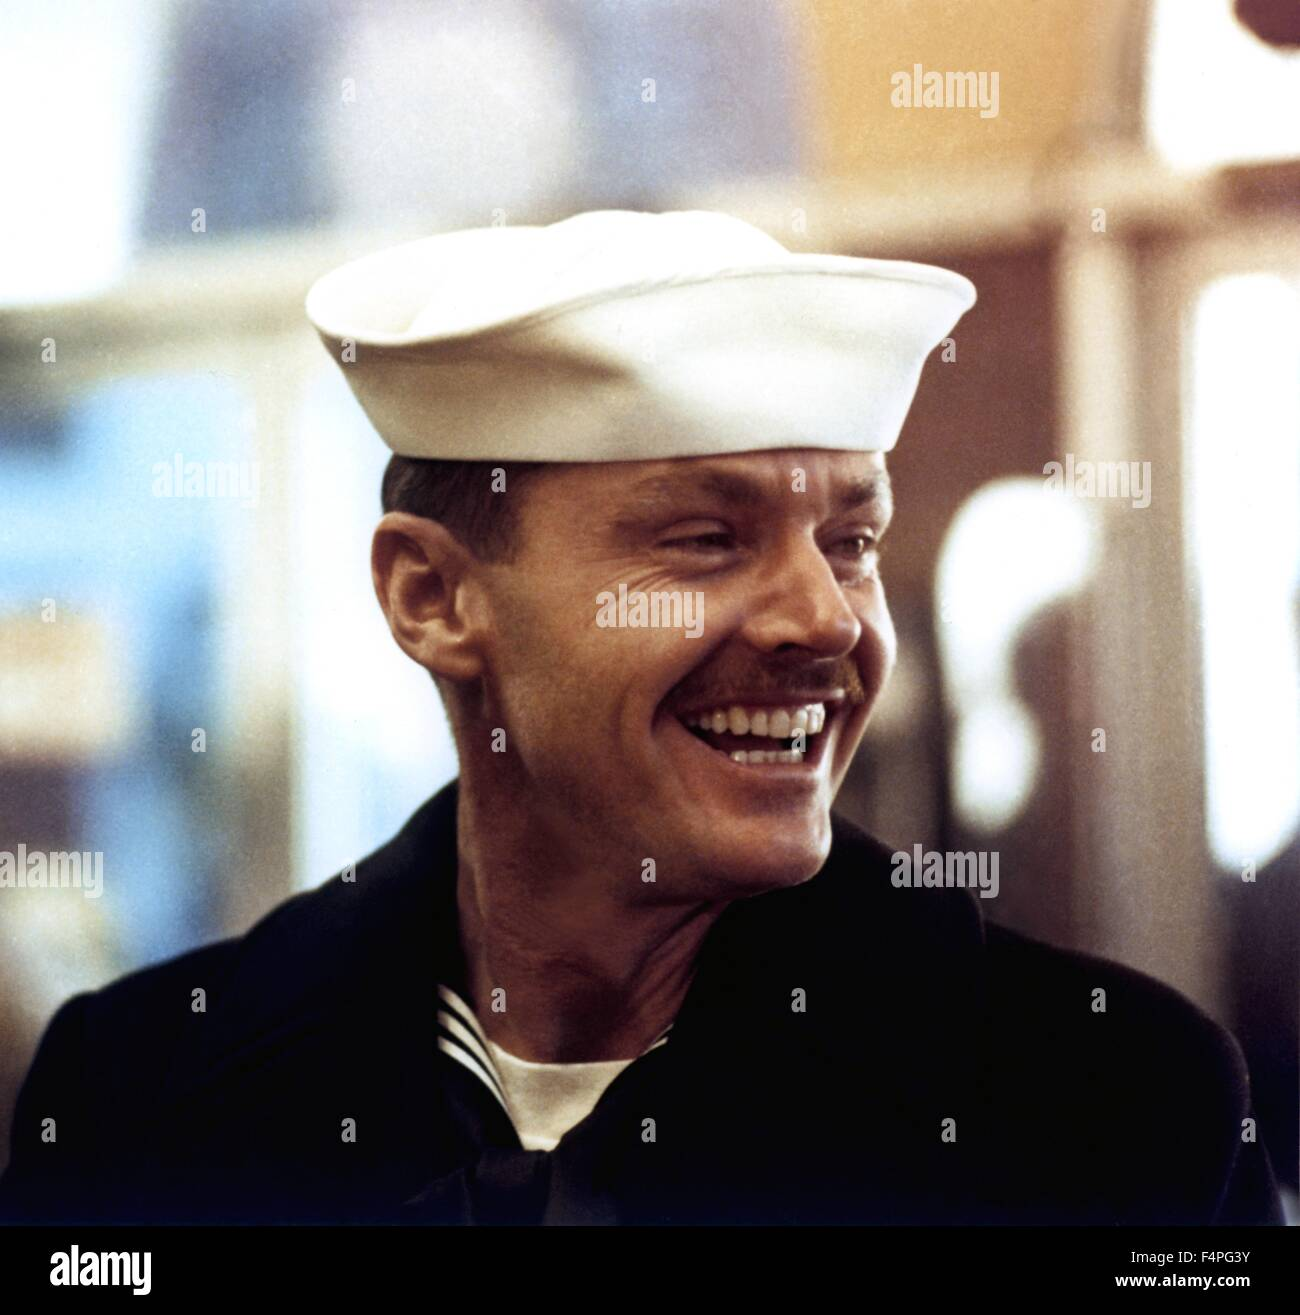 Jack Nicholson / The Last Detail / 1973 directed by Hal Ashby - Stock Image